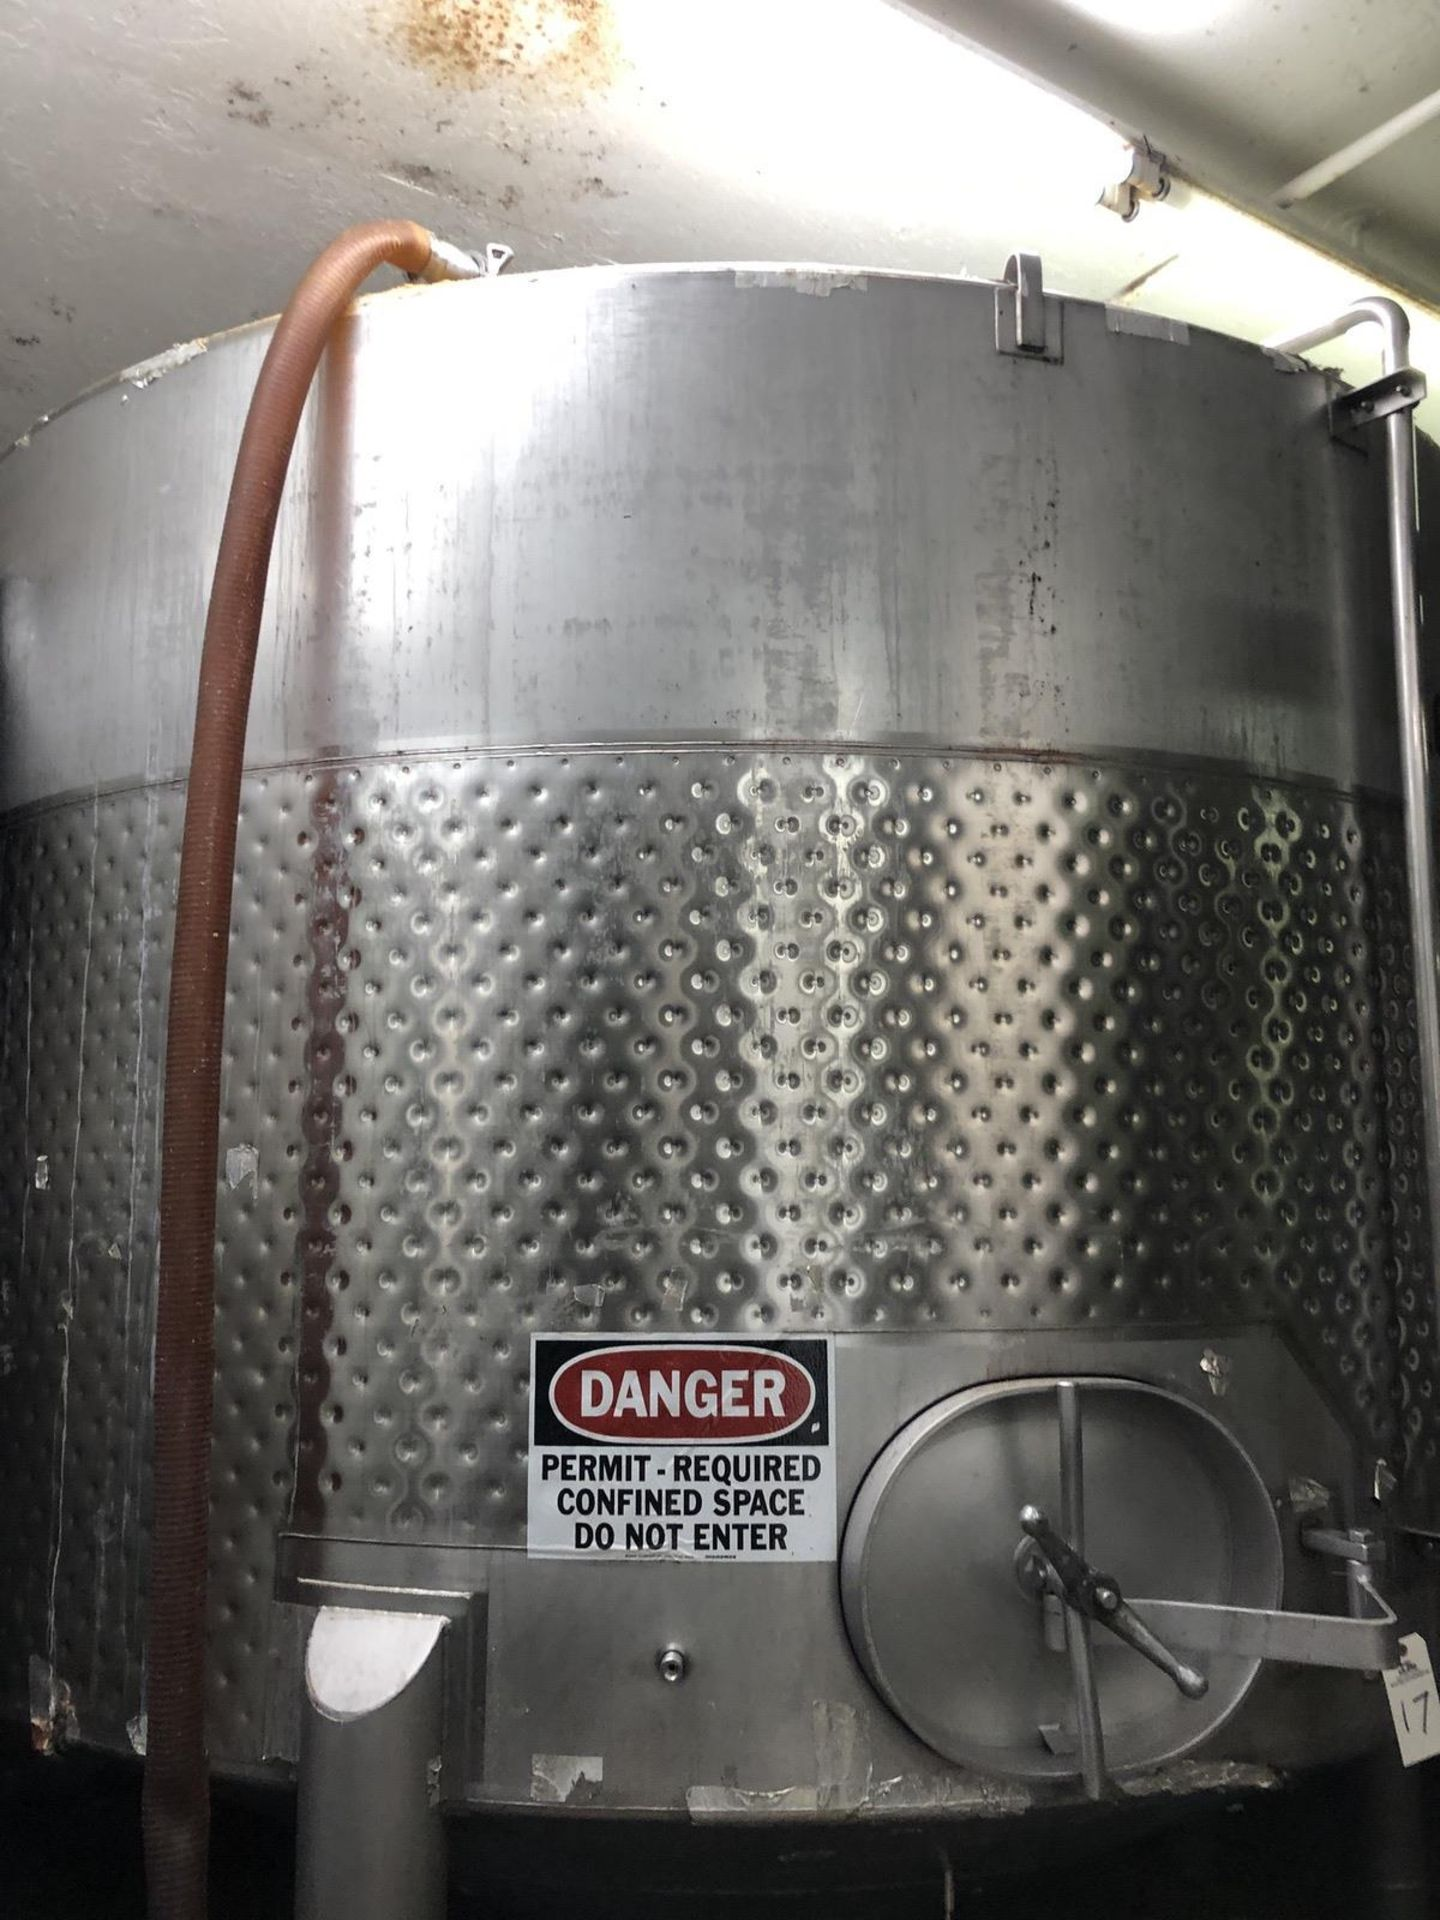 Lot 17 - Santa Rosa 100 BBL Fermenter, Cone Bottom, Glycol Dimple Jacketed, Stainless Steel, | Rig Fee: $2000